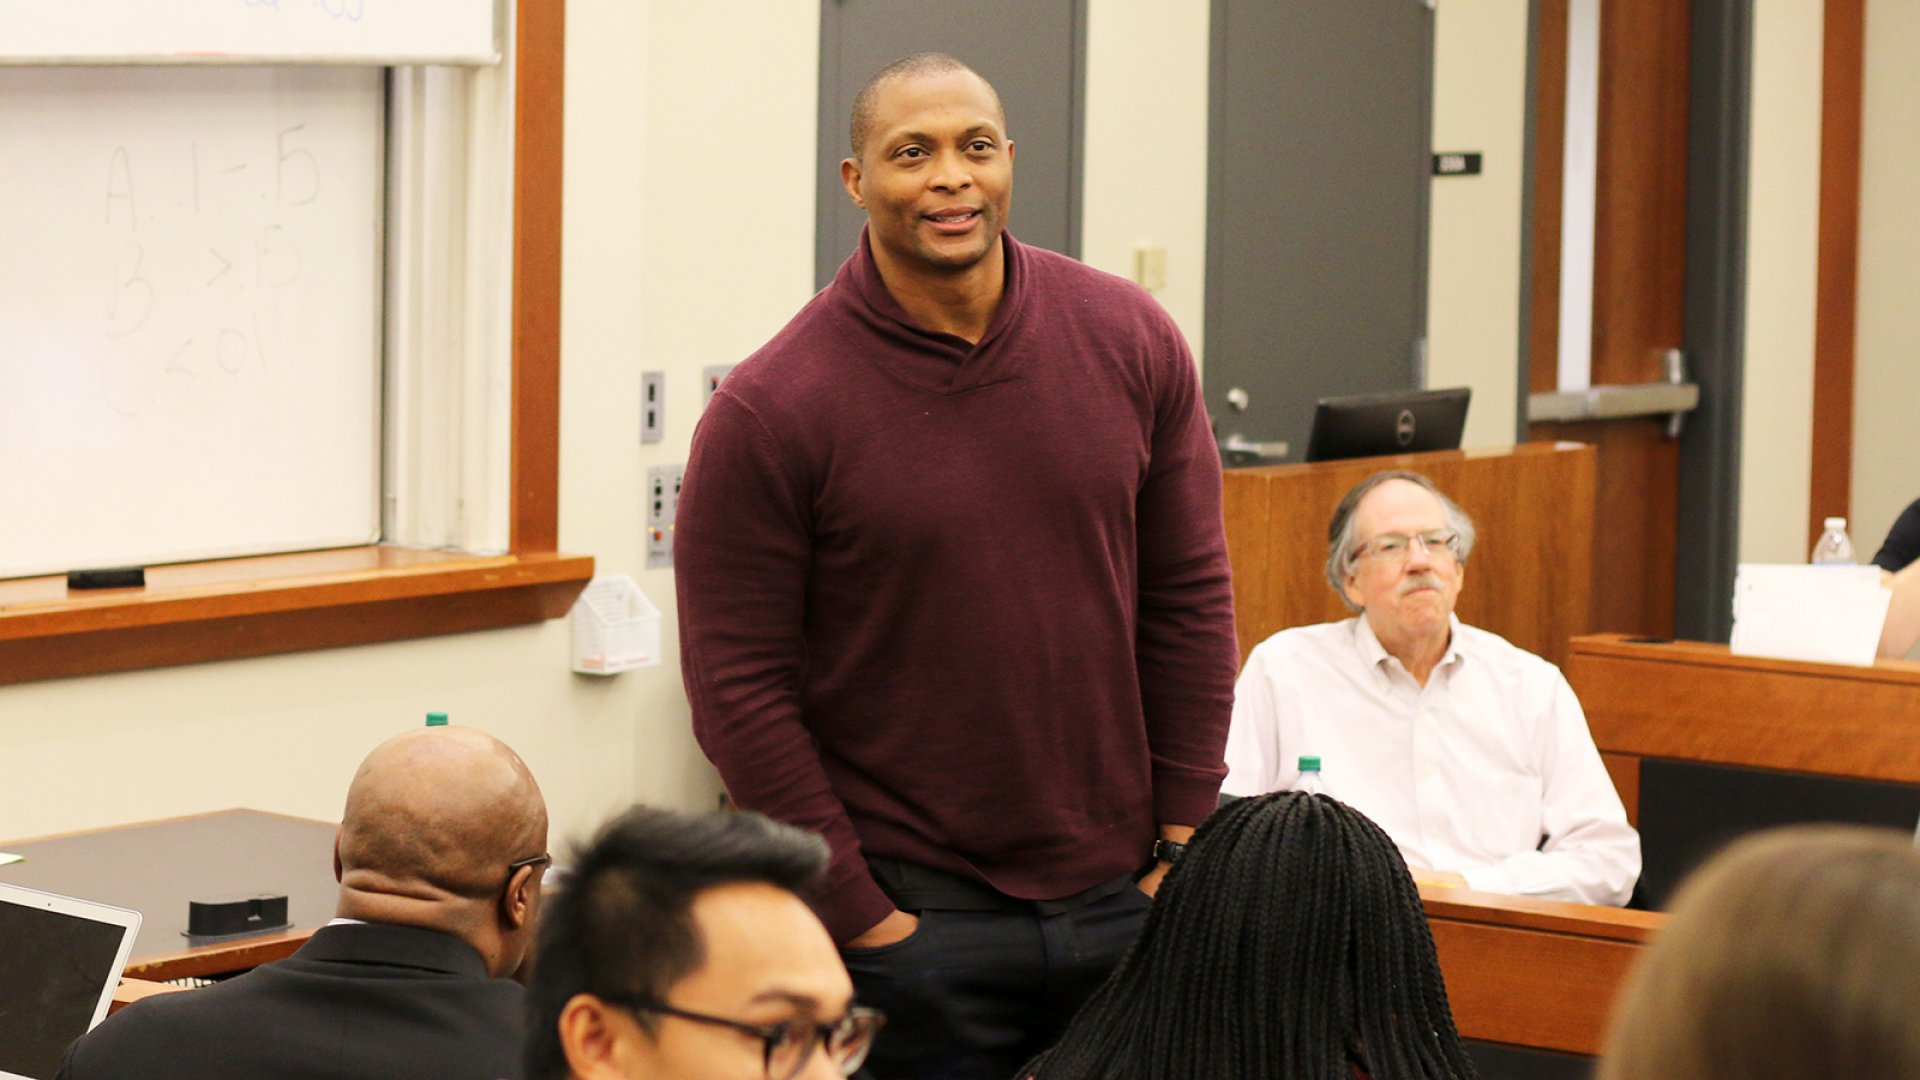 Former NFL player Eddie George teaches at Fisher College of Business.